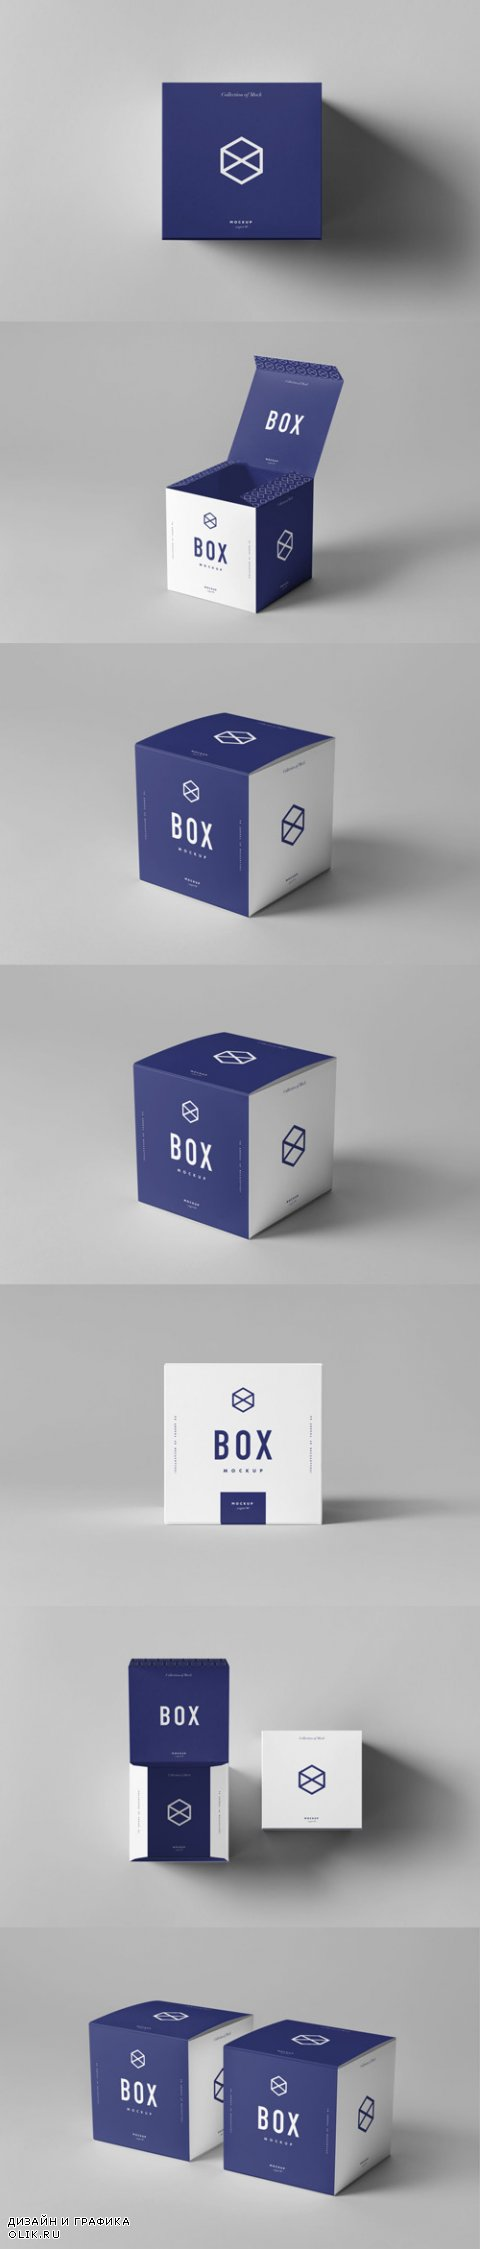 PSD Box Mock-Up 3